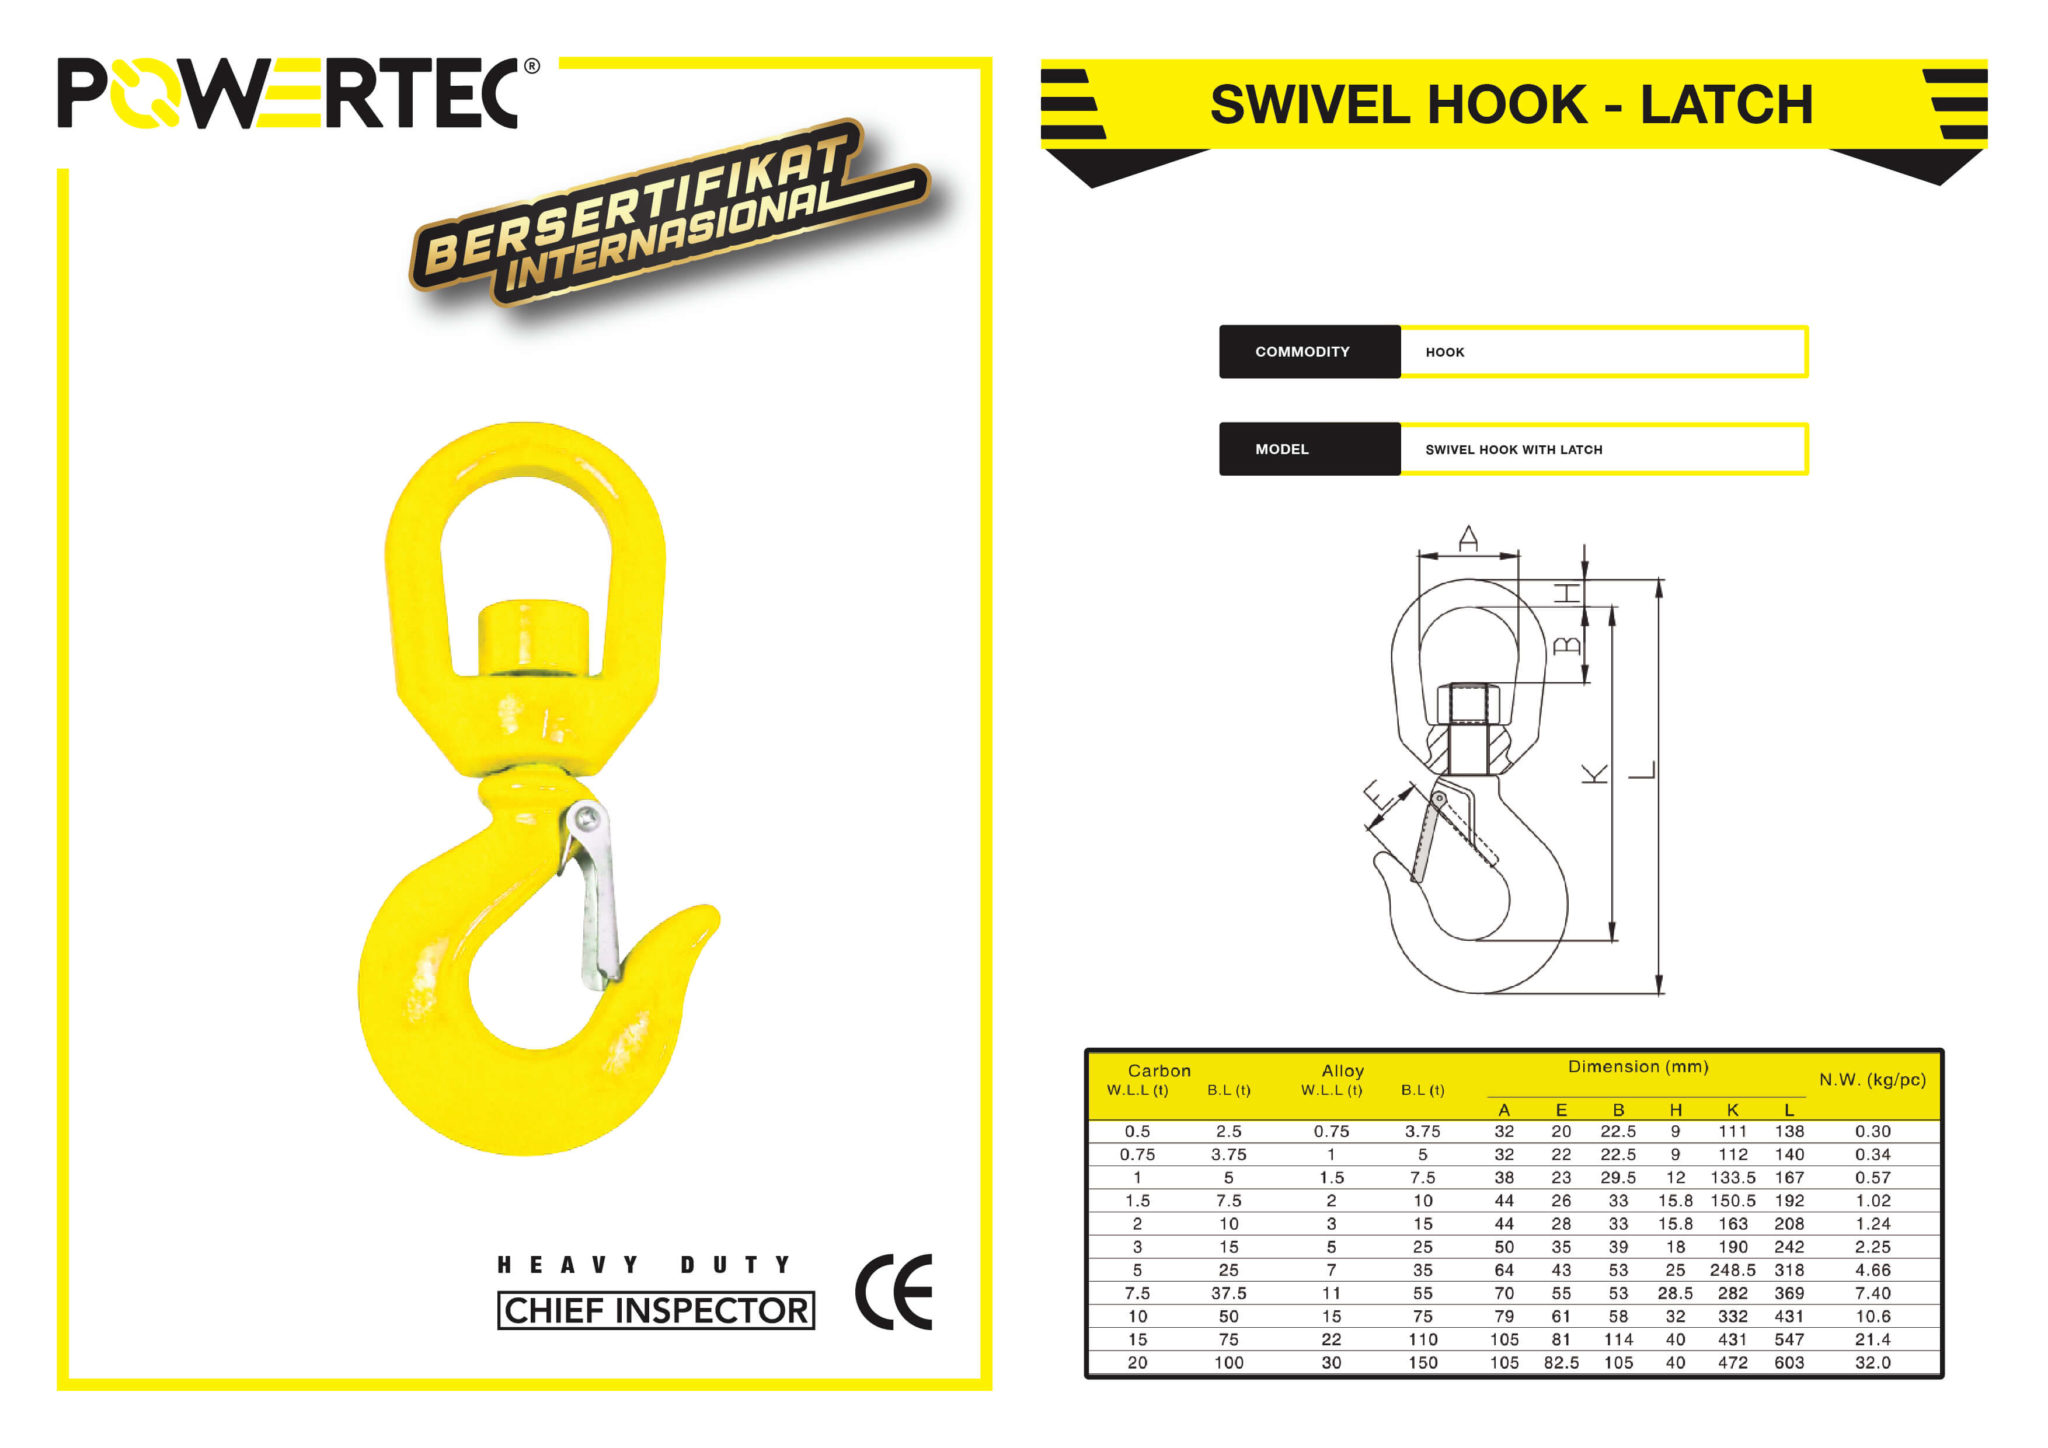 POWERTEC SWIVEL HOOK WITH LATCH BROCHURE